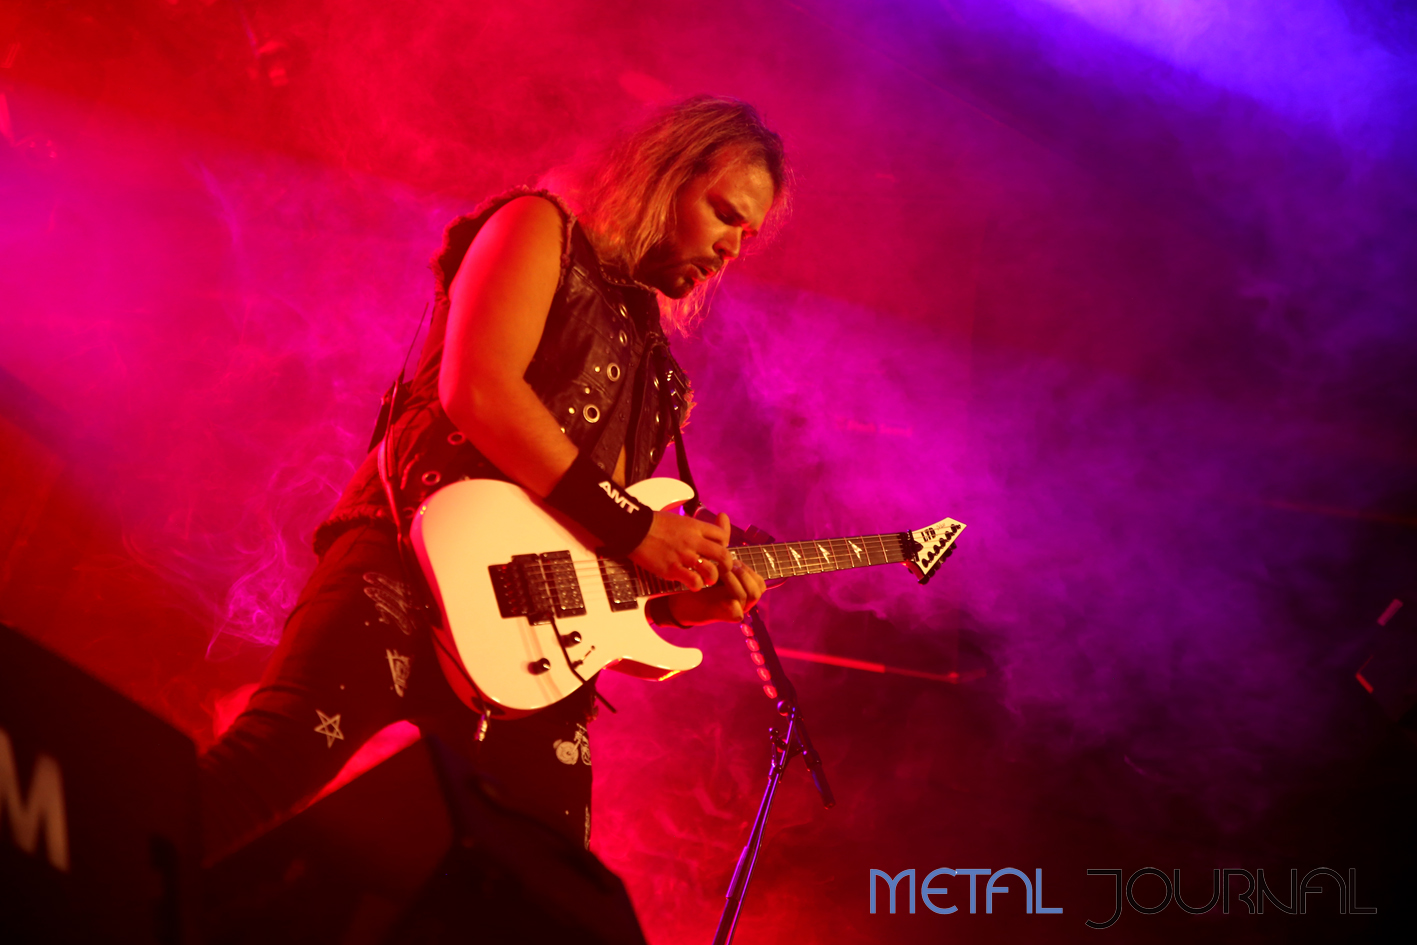 udo - metal journal villava 2019 pic 4